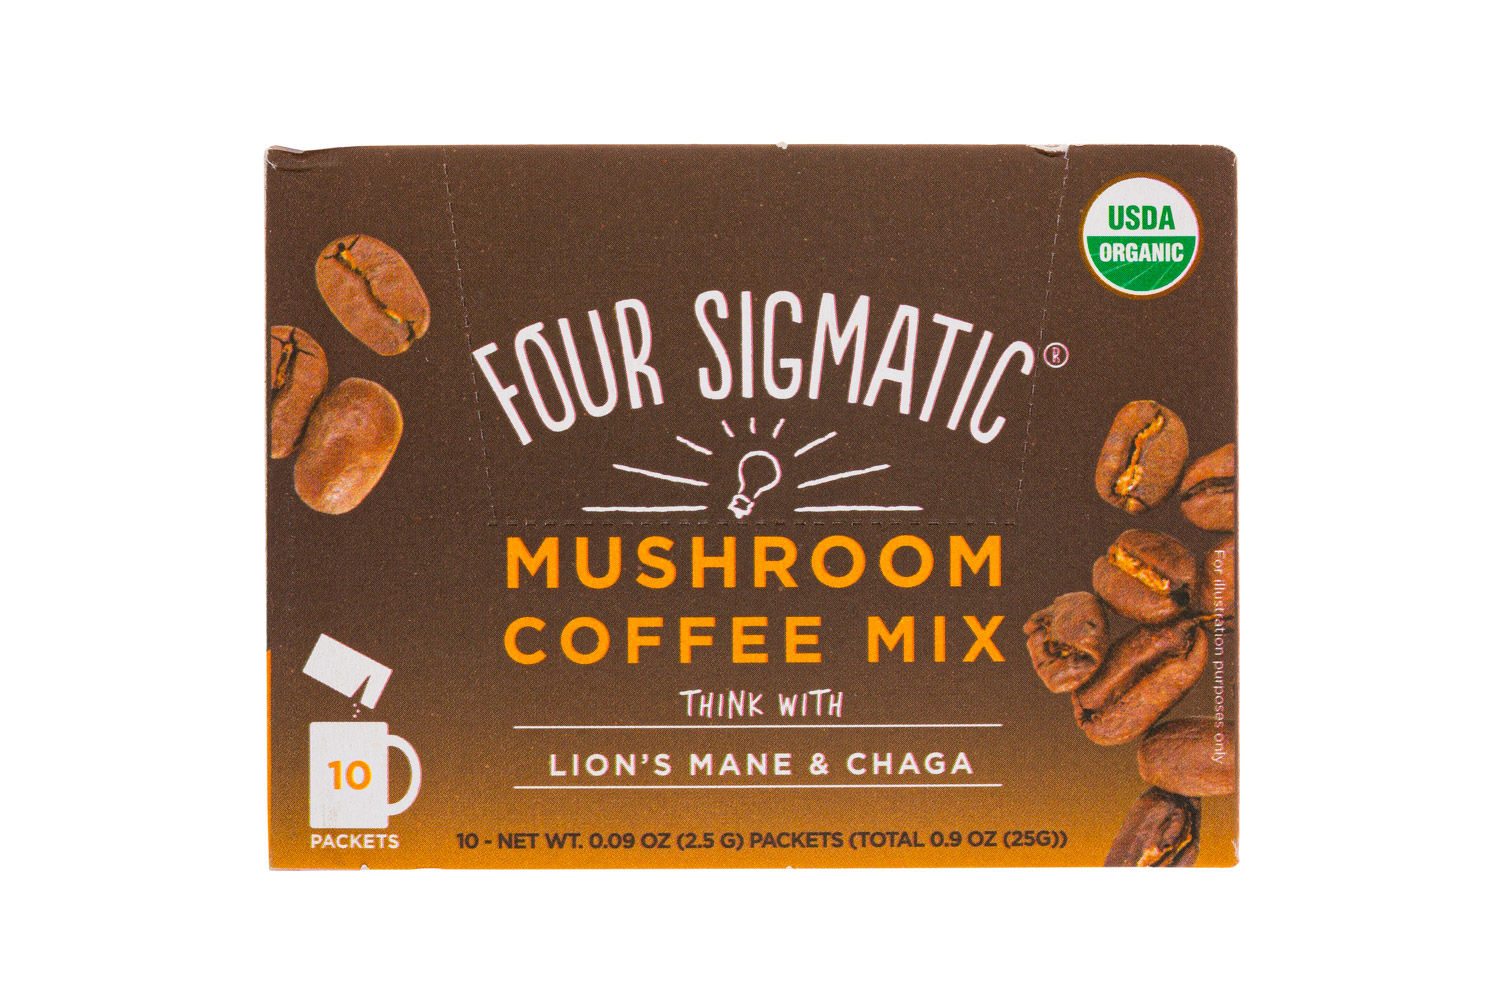 Mushroom Coffee Mix - Lion's Mane & Chaga